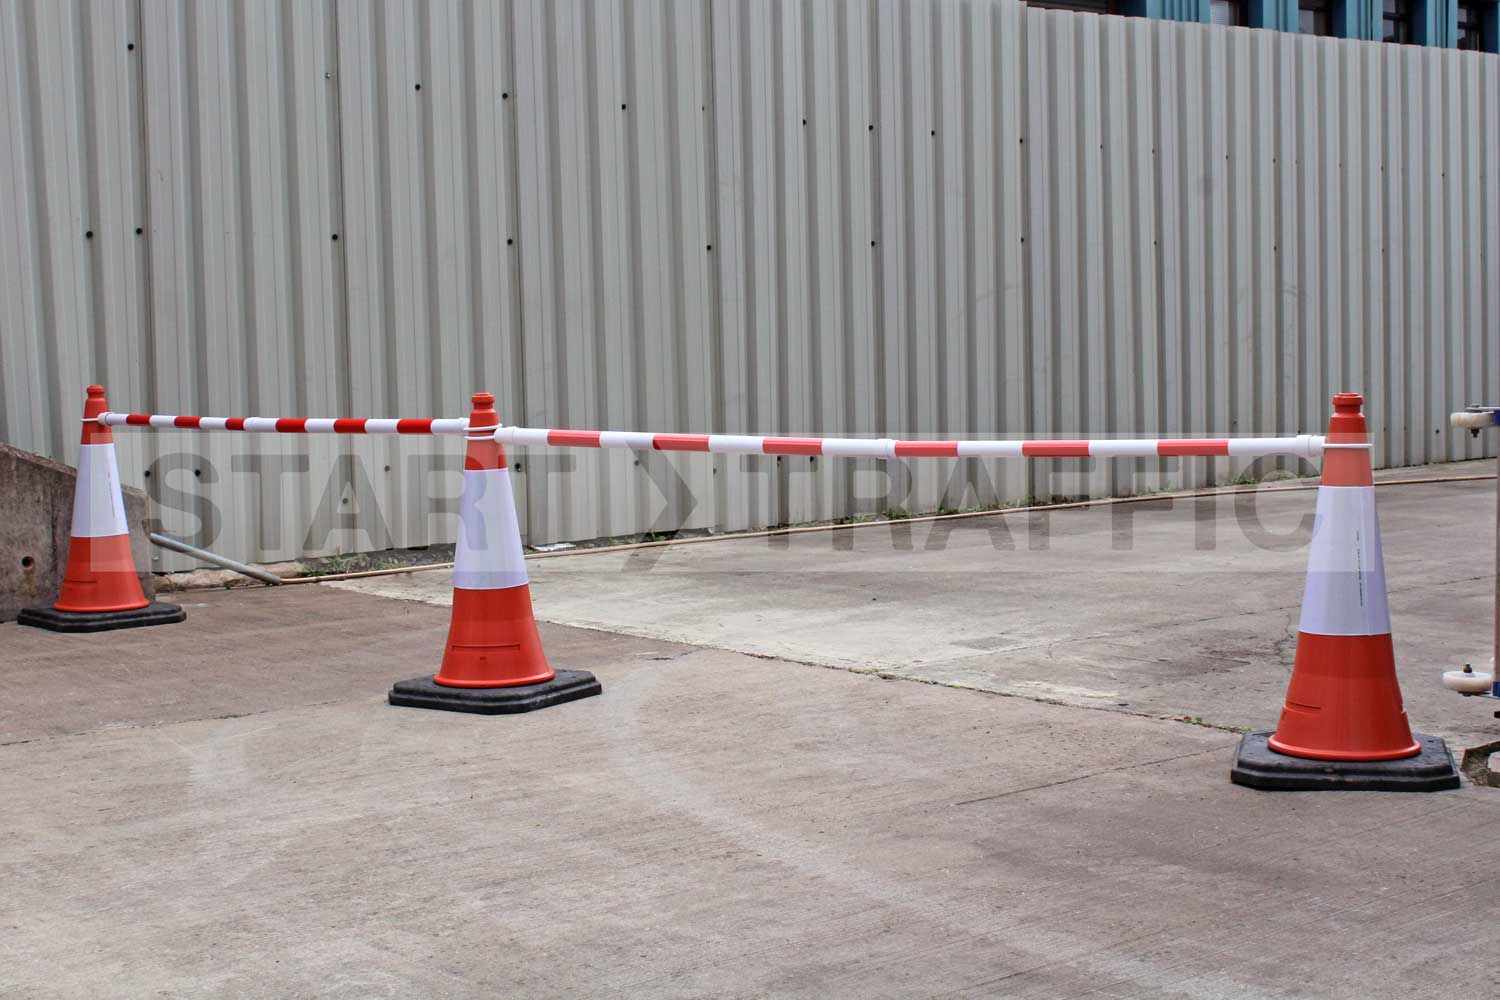 Expandable Cone Bar Barriers in use blocking exit